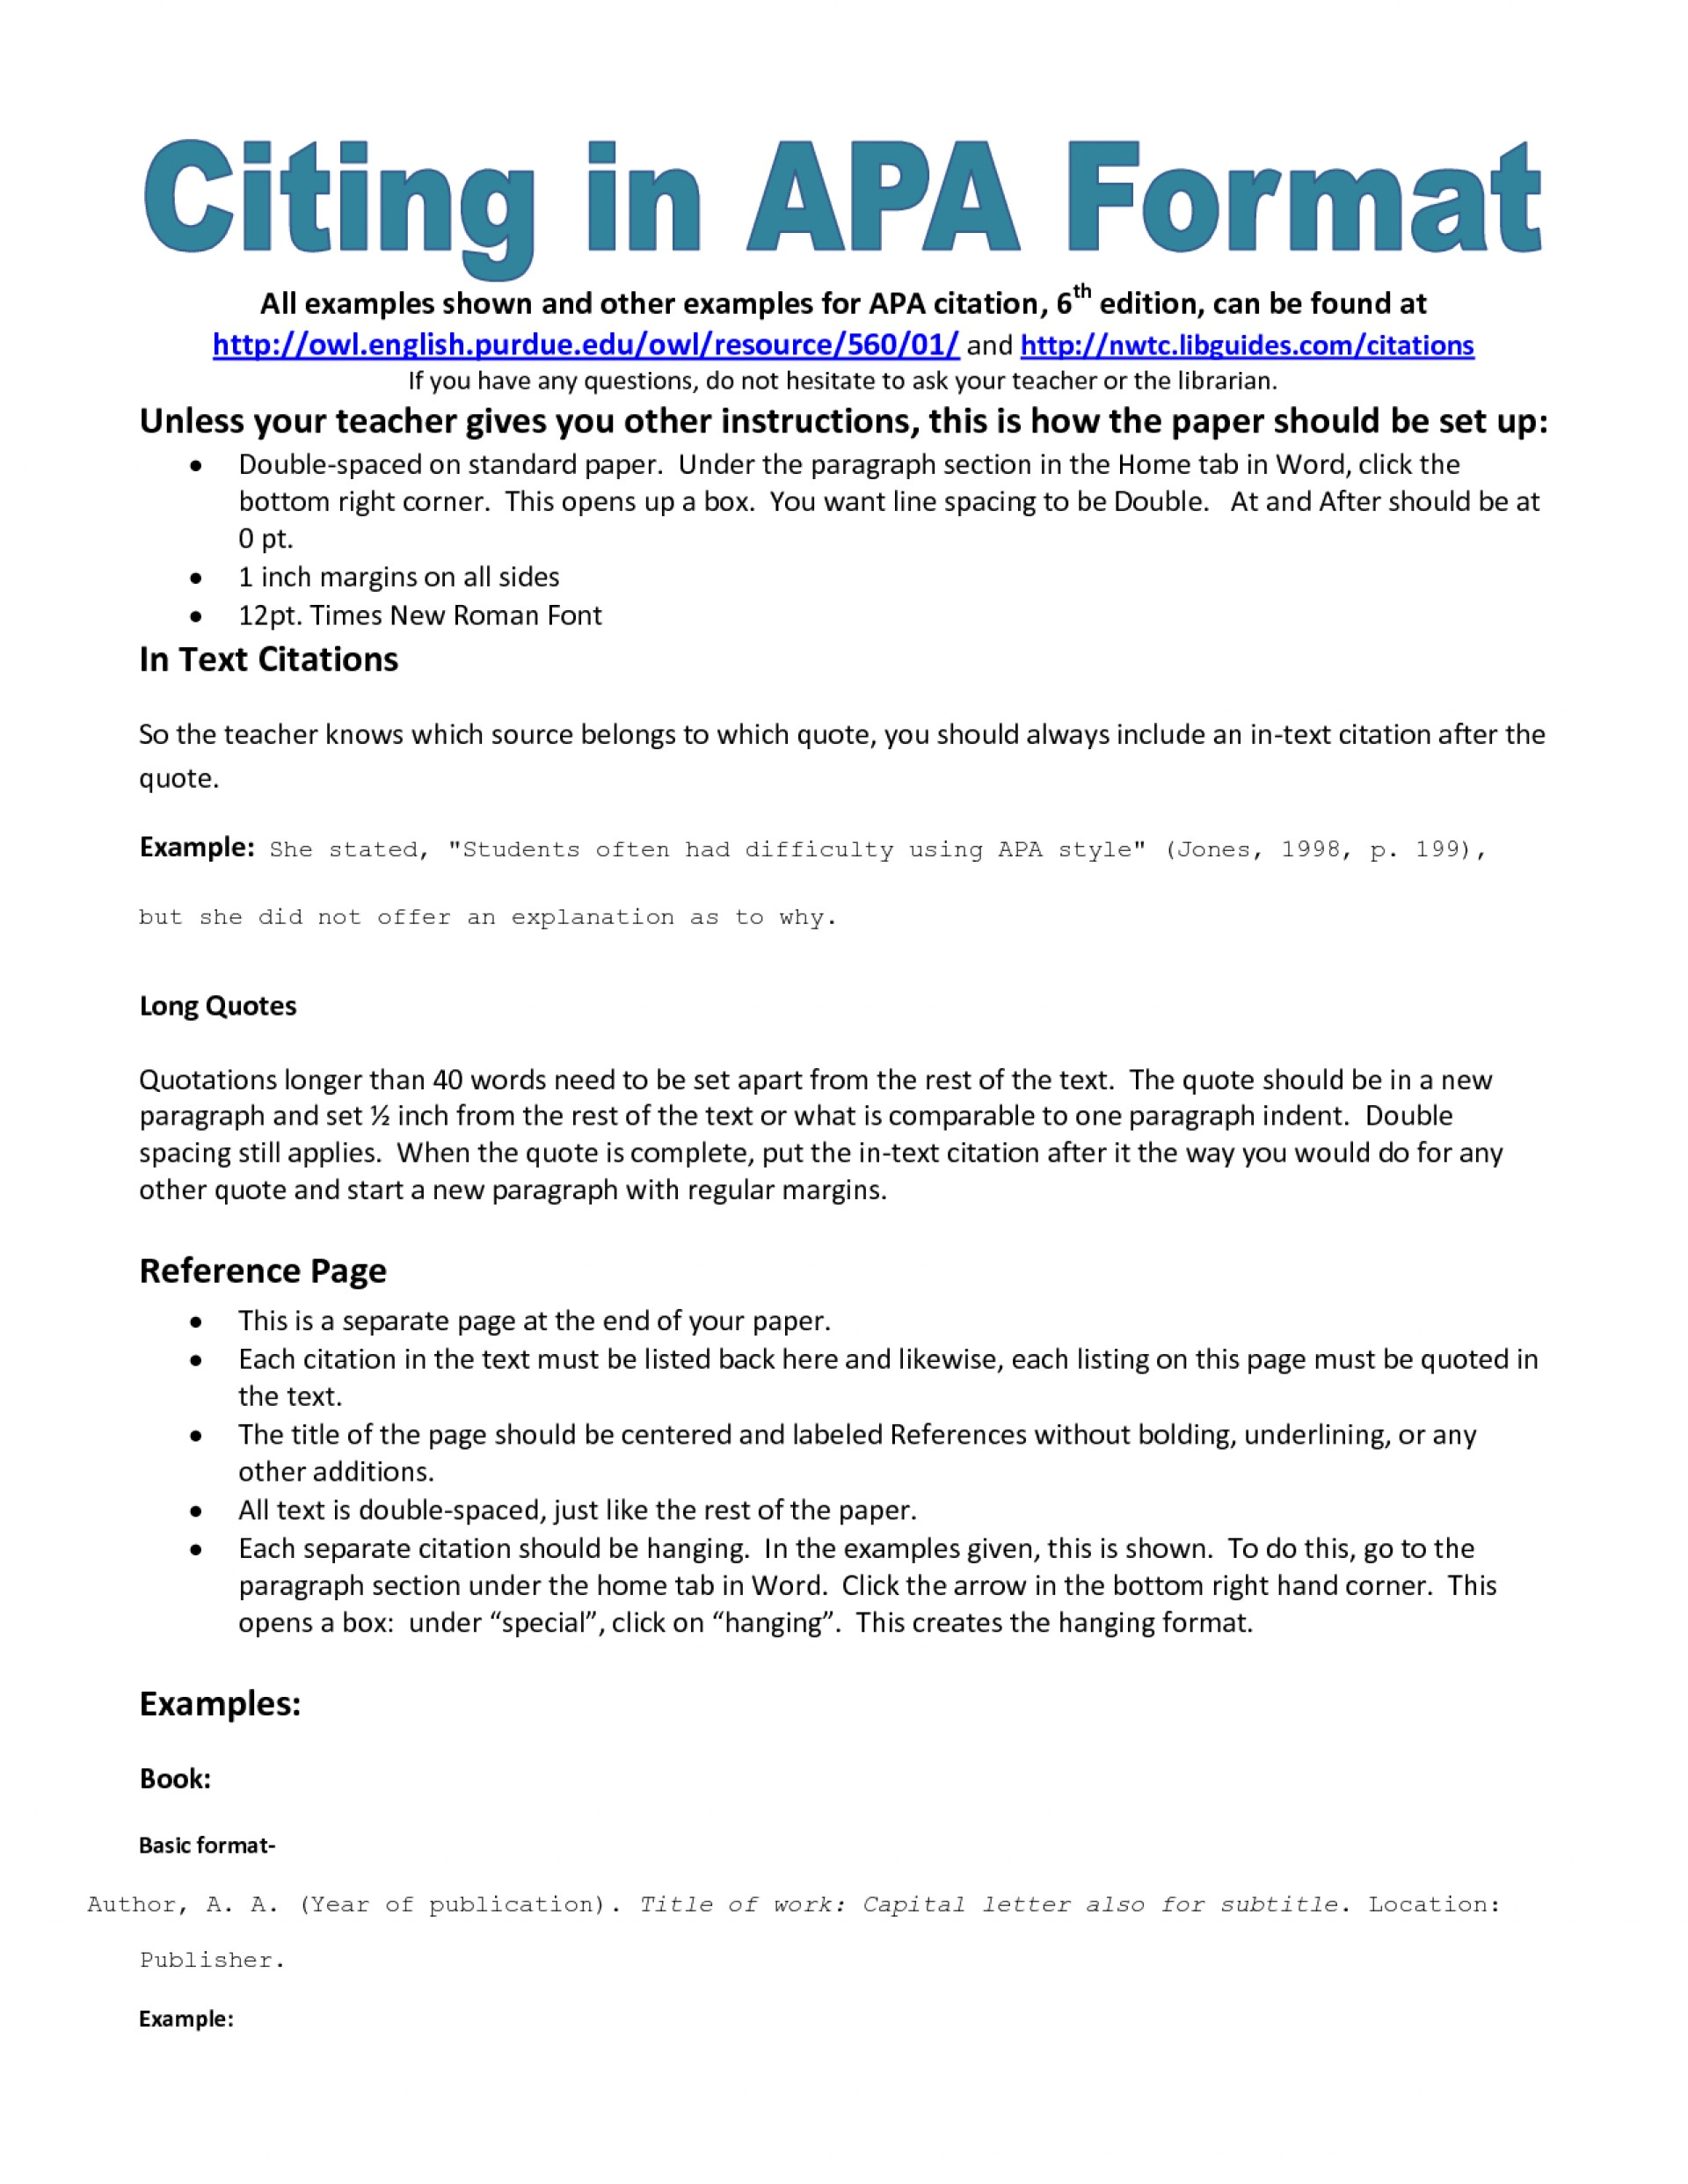 010 Research Paper How To Reference Articles Sensational Apa Cite Web Journal A Article Title In Text Online Format 1920